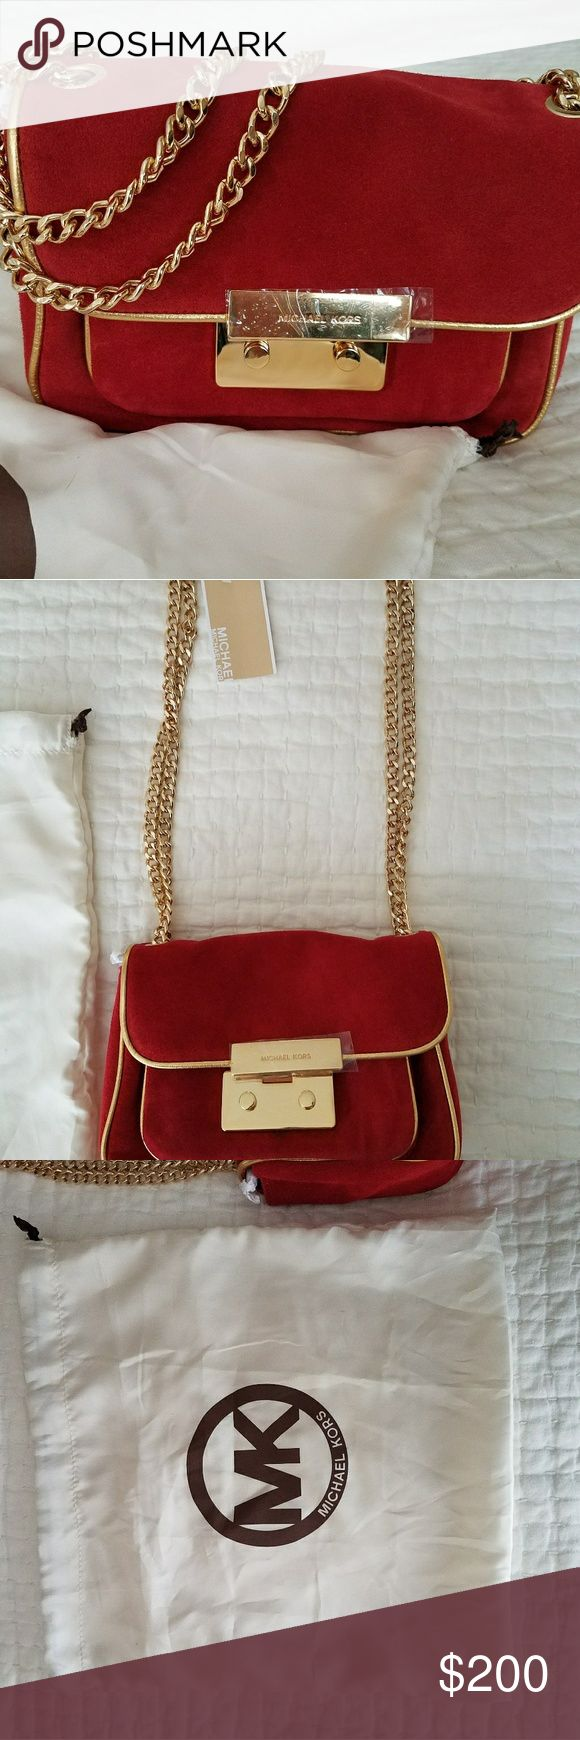 """Michael Kors Small Specchio Sloan Suede Bag NWT and original dust bag!    ?Red suede with gold trim. ?Black suede with gold trim  ?Golden hardware ?Link-chain shoulder strap ?Front flap with Michael Kors logo-engraved snap closure. ?Front exterior open pocket. ?Inside, contrast MK monogram lining, one open pocket, center zip compartment, one zip pocket and six card slots. ?5 1/2""""H x 8 1/2""""W x 2 1/2""""D.Imported.  There are two small discolorations; 1 just under the front snap closure, the…"""